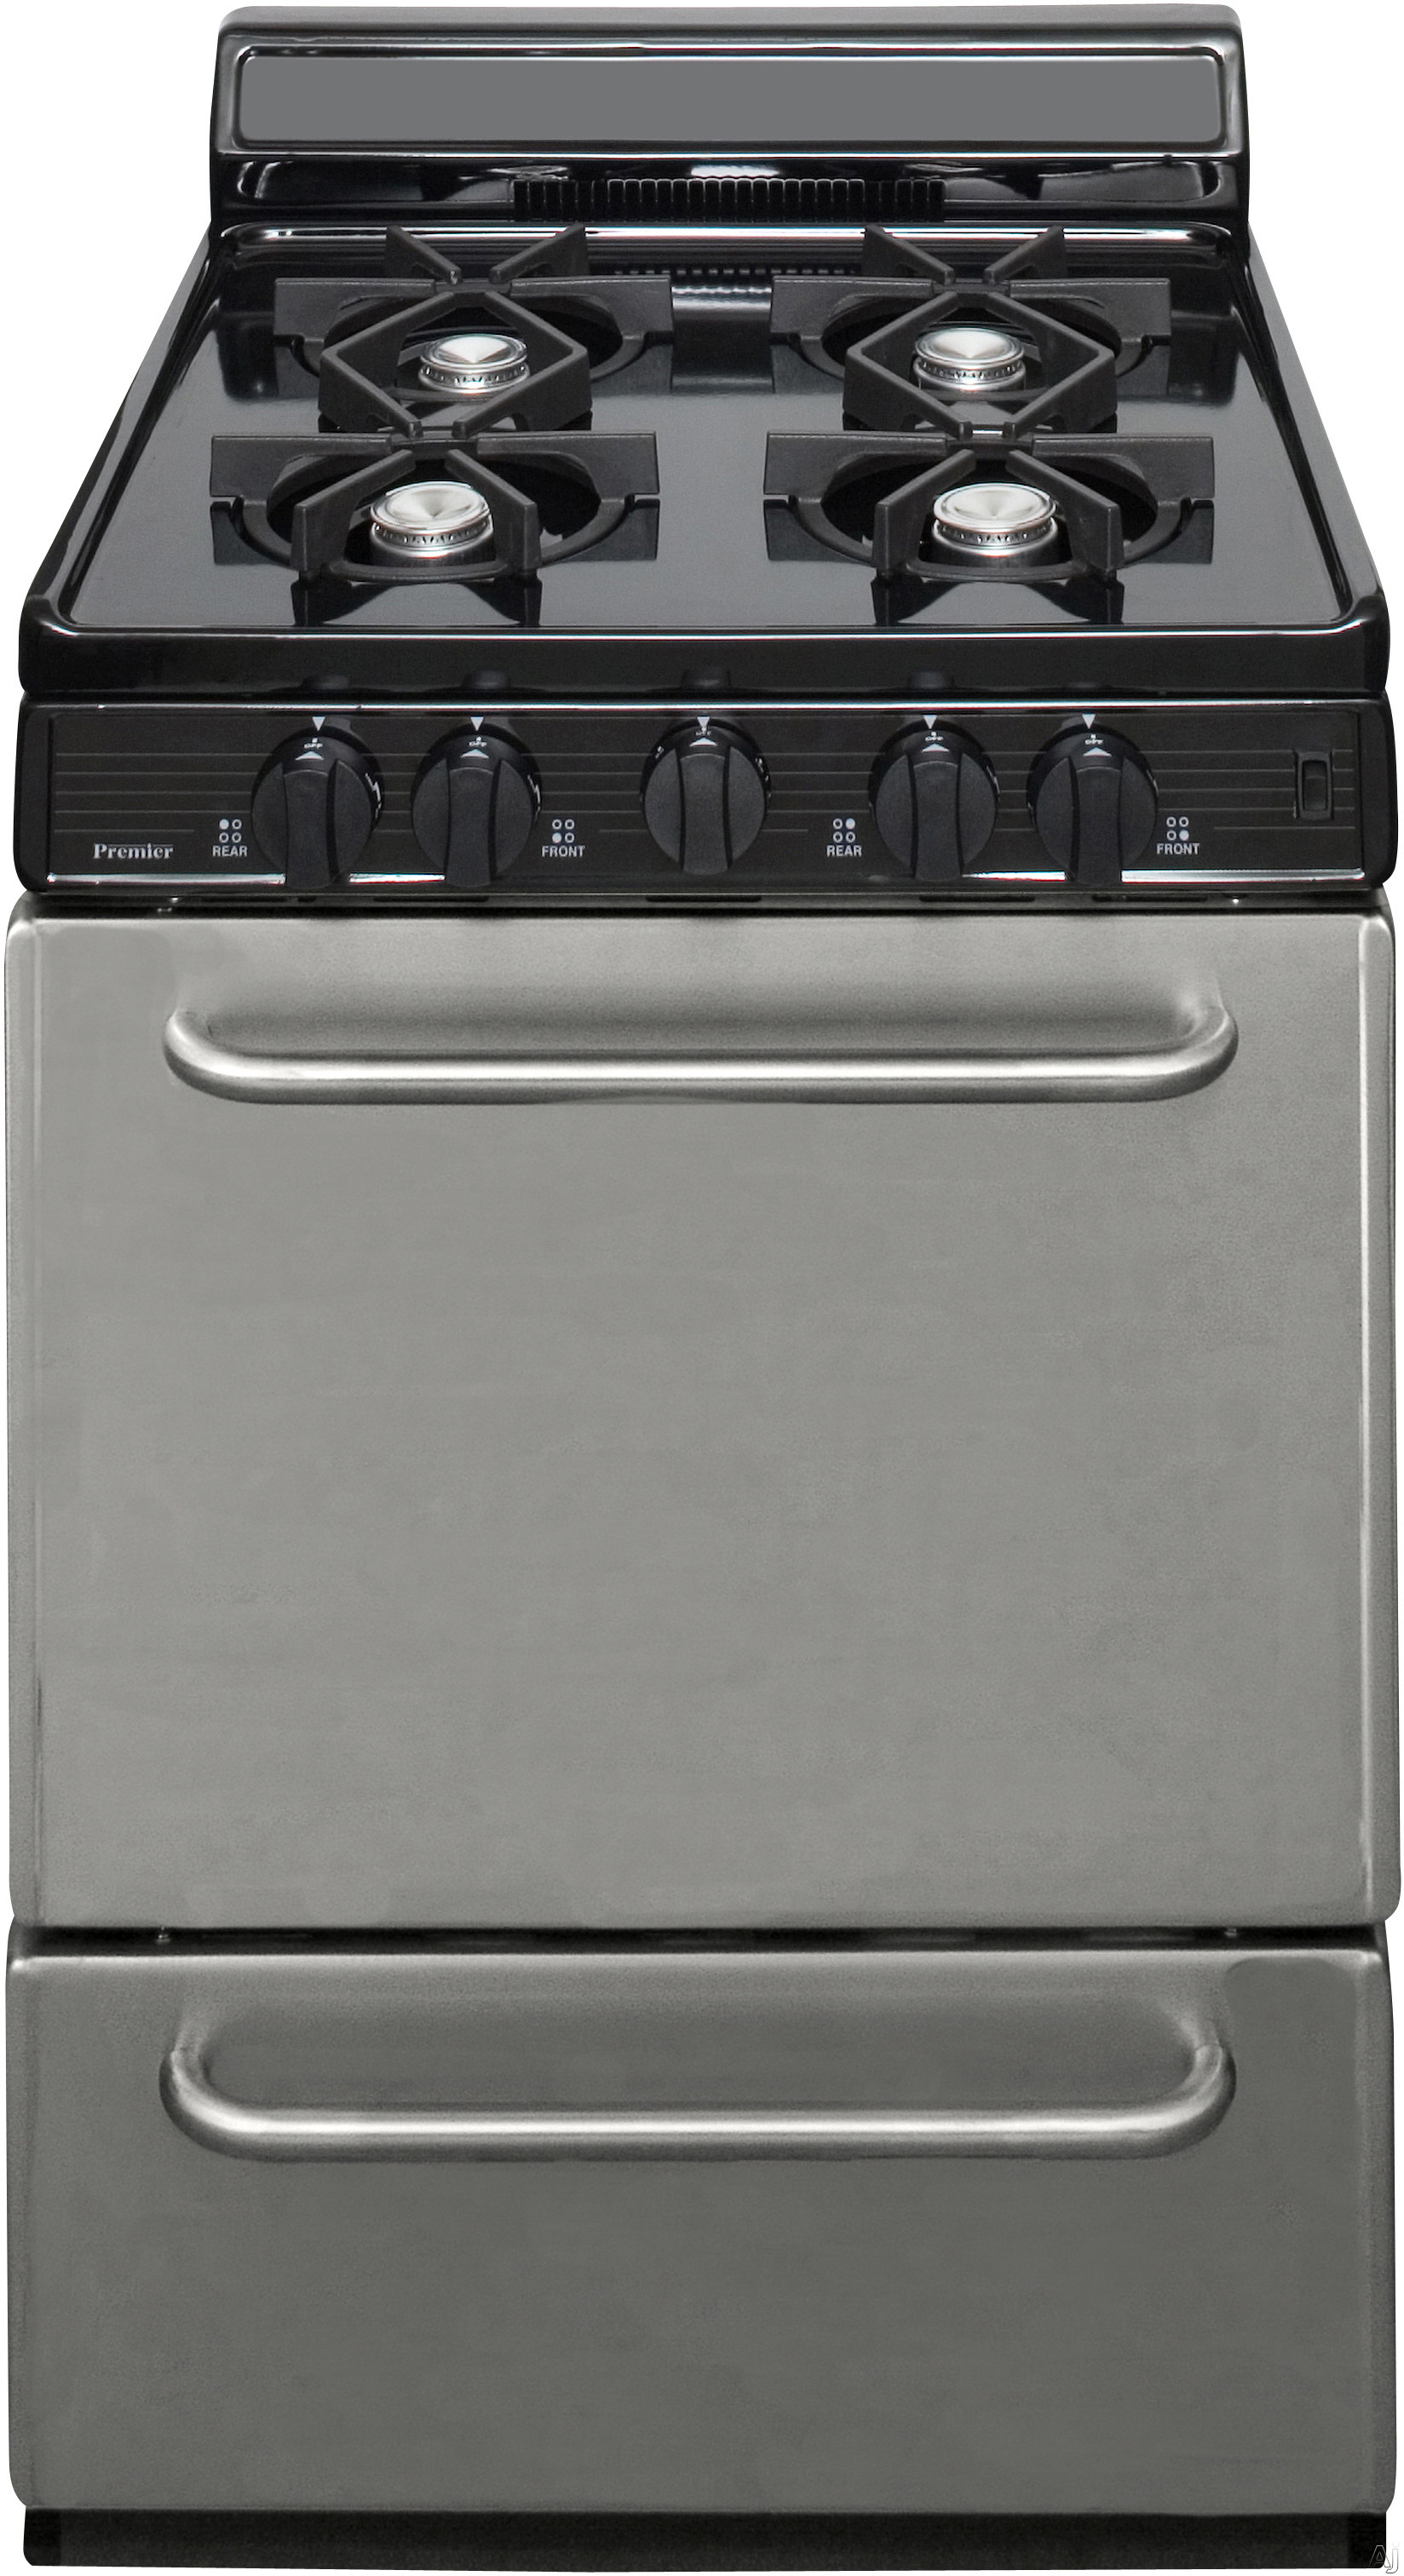 Premier SCK600BP 24 Inch Freestanding Gas Range with 4 Open Burners, 17,000 BTU Manual Clean Oven, Heavy Duty Racks, Chrome Burner Trays, Roll-Out Drop Door Broiler, Anti-Tip Bracket, Interior Oven Li